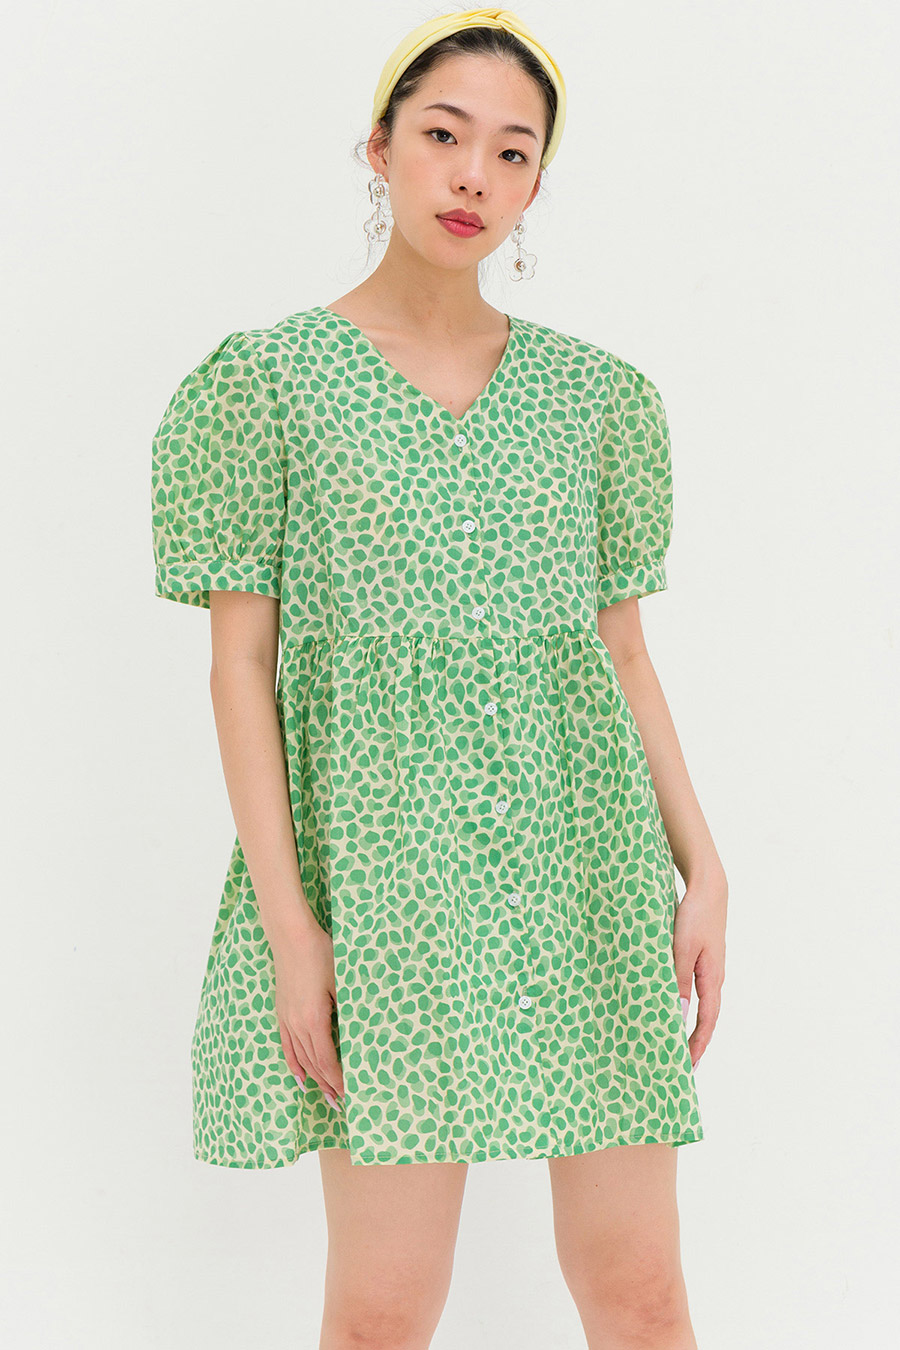 ELISE DRESS - MEADOW